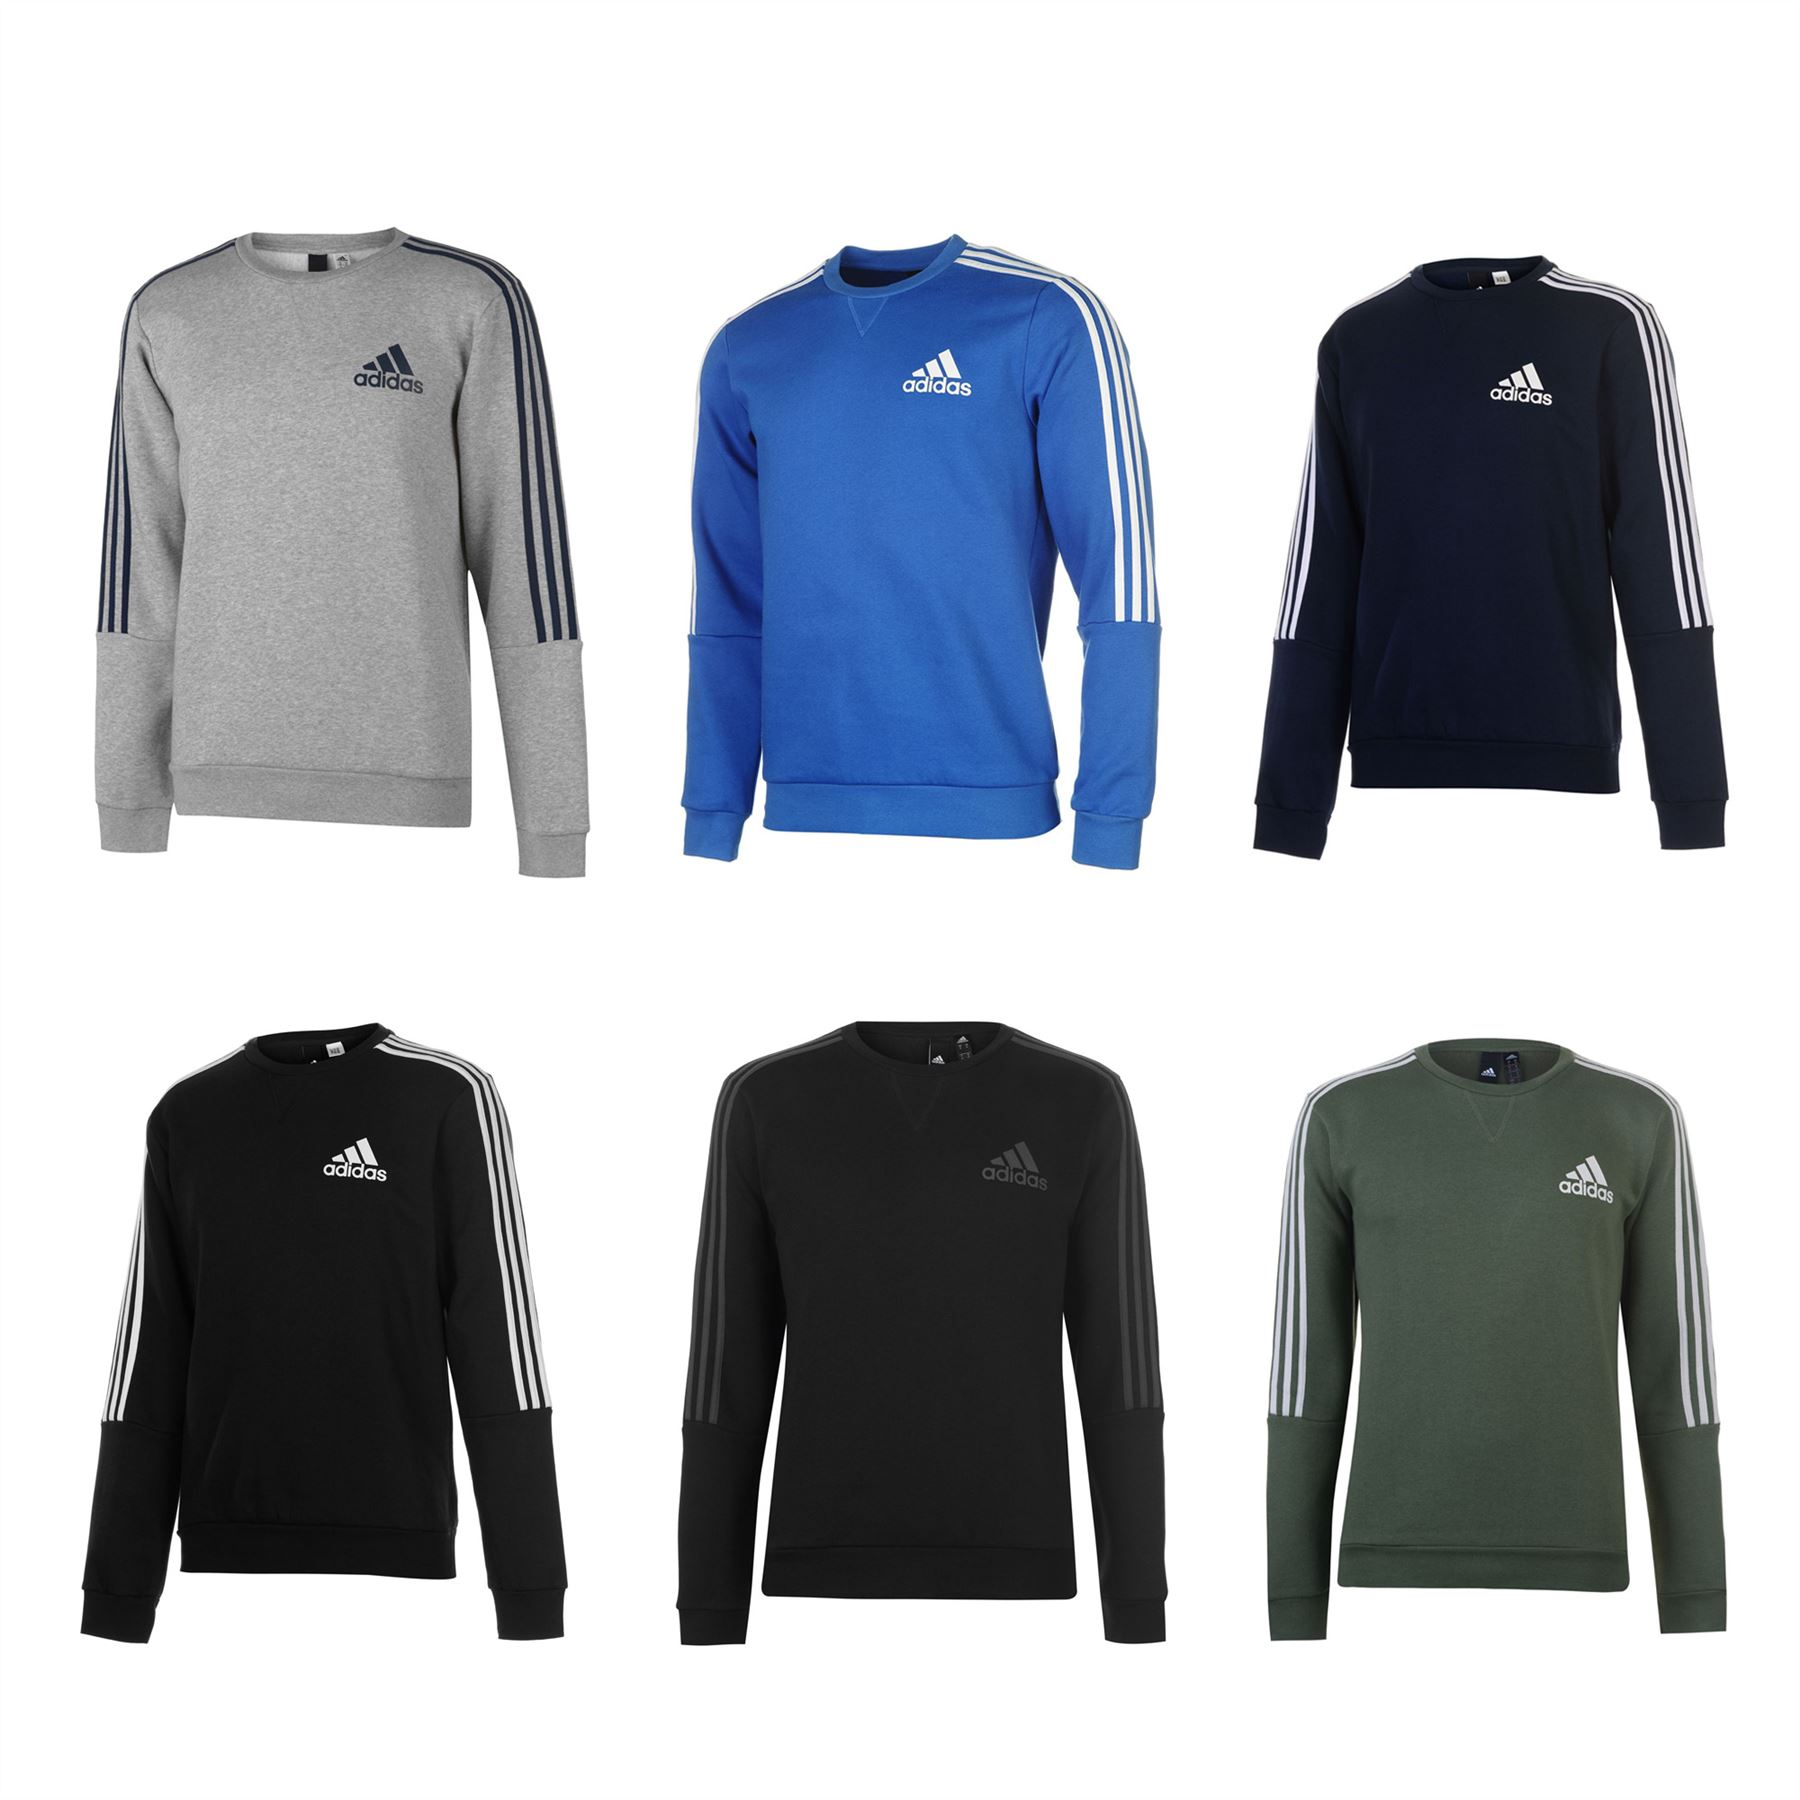 Details about adidas 3 Stripes Crew Sweatshirt Mens Sweater Top Jumper